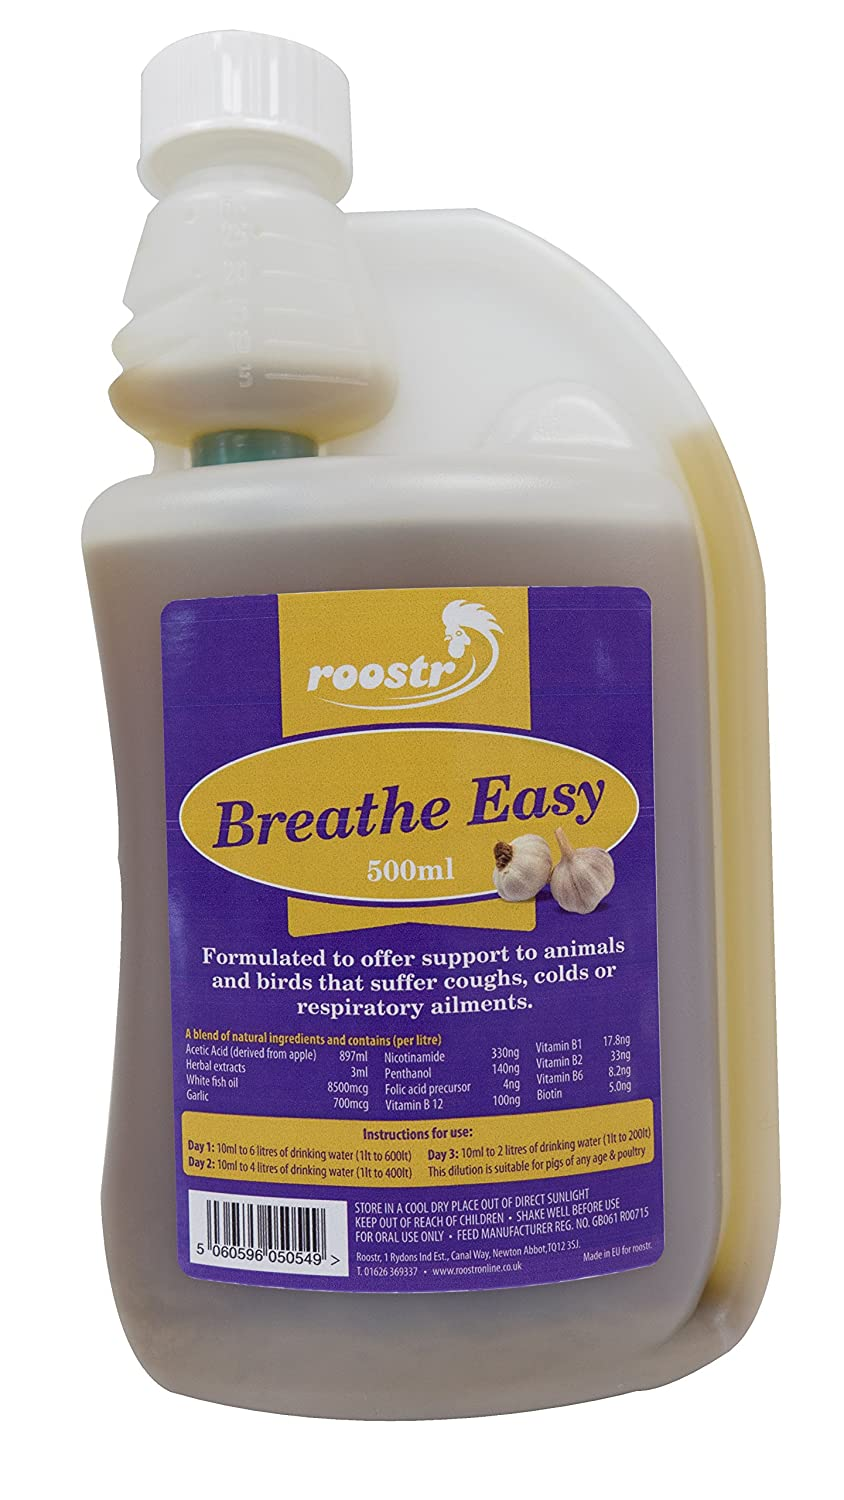 500ml Respite Breathe Easy - Help Coughs and Colds for Chickens, Poultry, Pigs Hatching Eggs Jalex® Poultry